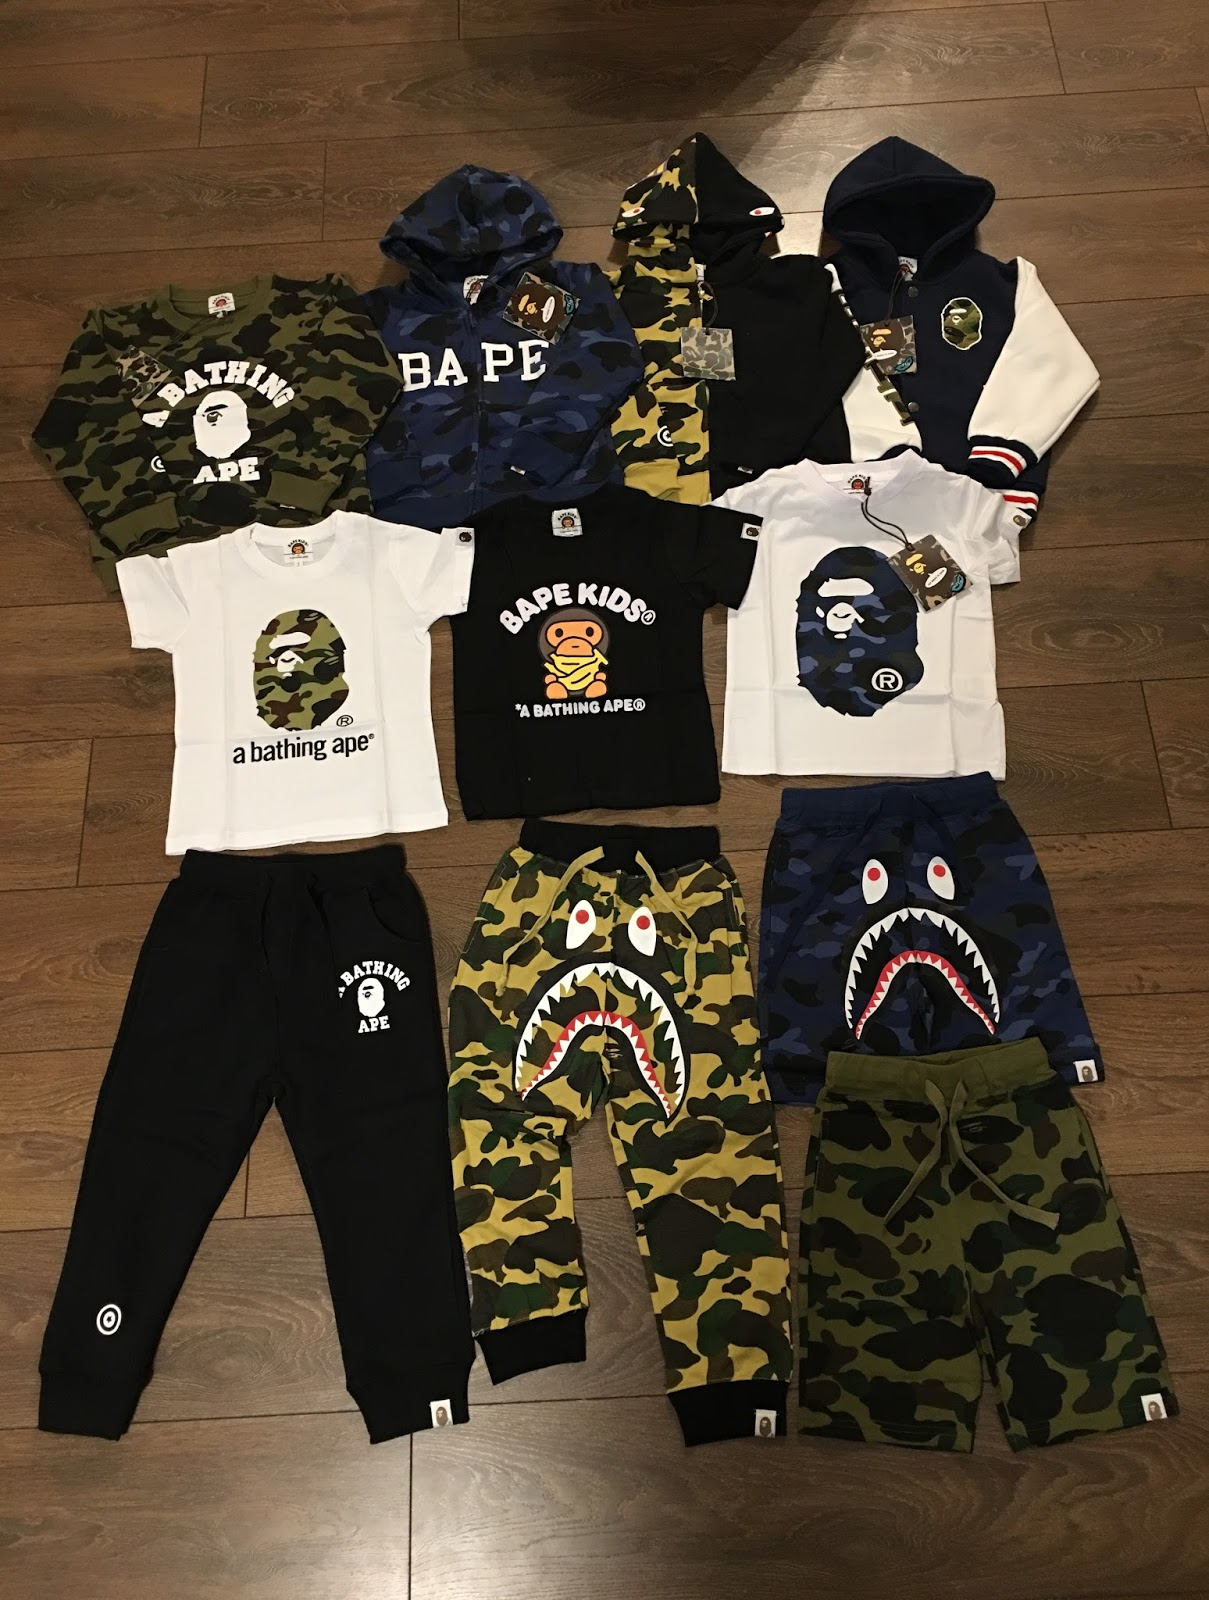 bape kids clothing haul xcd9710